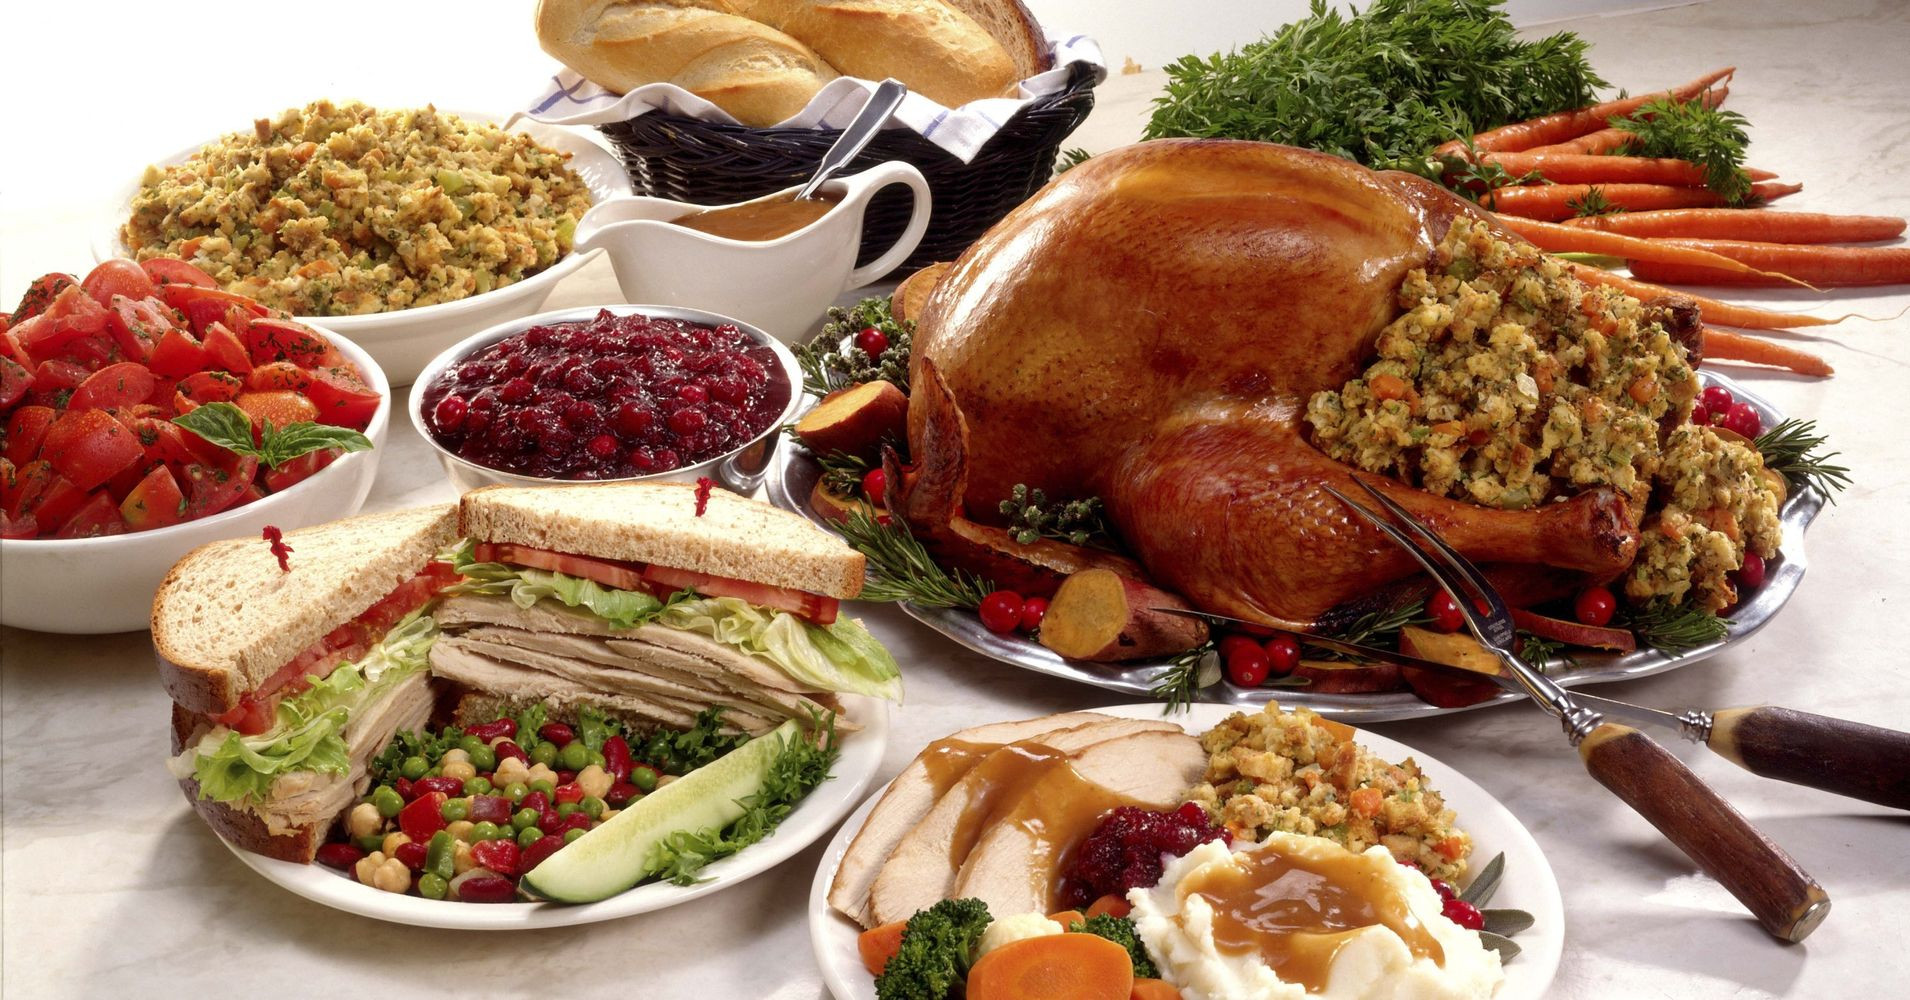 Food 4 Less Thanksgiving Dinners  Yes Thanksgiving Dinner Really Could Trigger A Heart